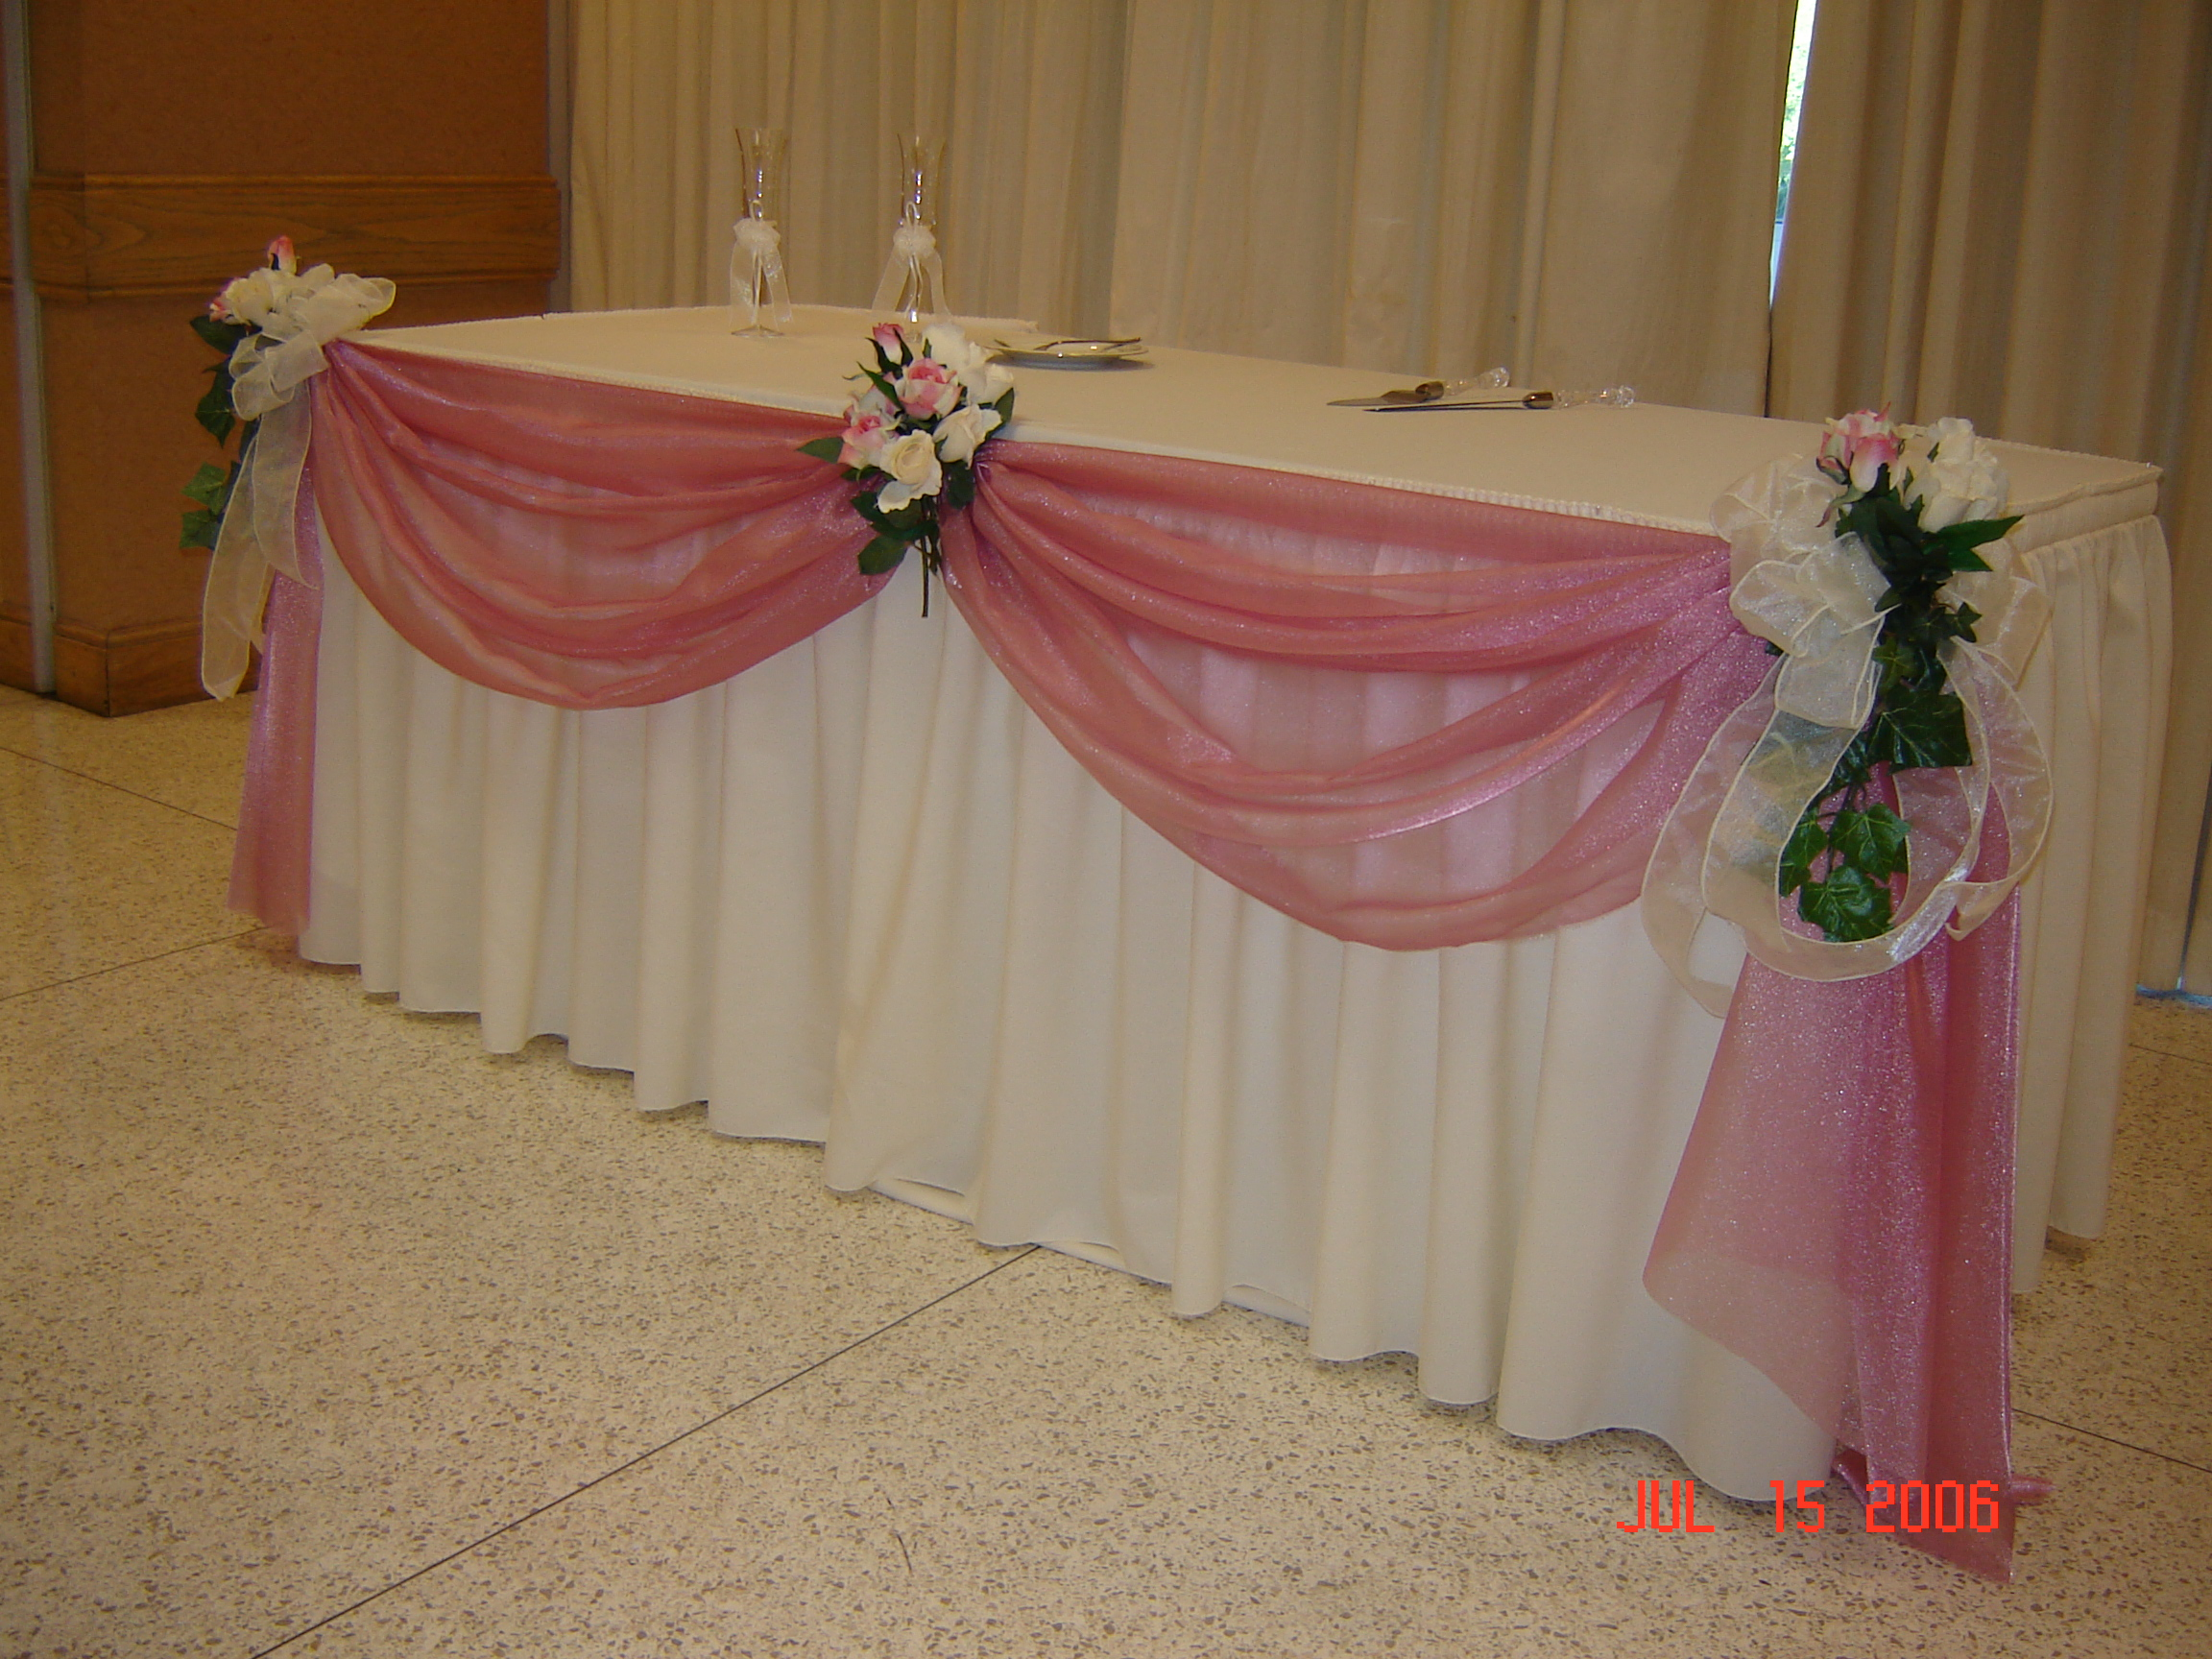 Wedding decoration stores in dallas tx images wedding for Wedding dress rentals dallas tx